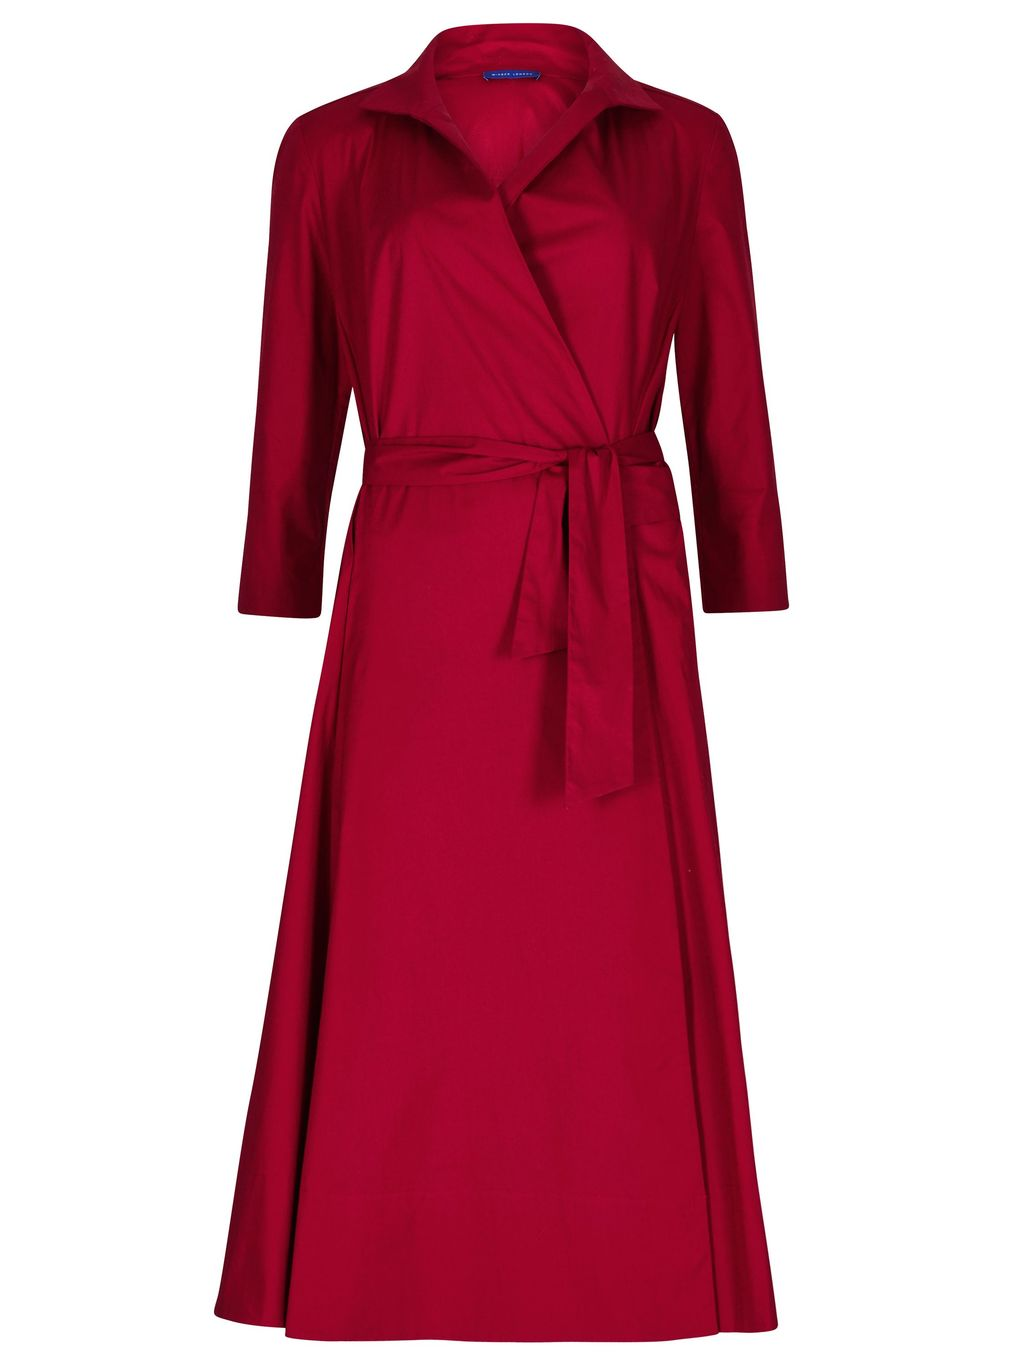 Cotton Poplin Wrap Dress, Red - style: faux wrap/wrap; length: below the knee; neckline: shirt collar/peter pan/zip with opening; fit: fitted at waist; pattern: plain; fibres: cotton - 100%; occasions: occasion; sleeve length: 3/4 length; sleeve style: standard; pattern type: fabric; texture group: other - light to midweight; predominant colour: raspberry; season: s/s 2016; wardrobe: event